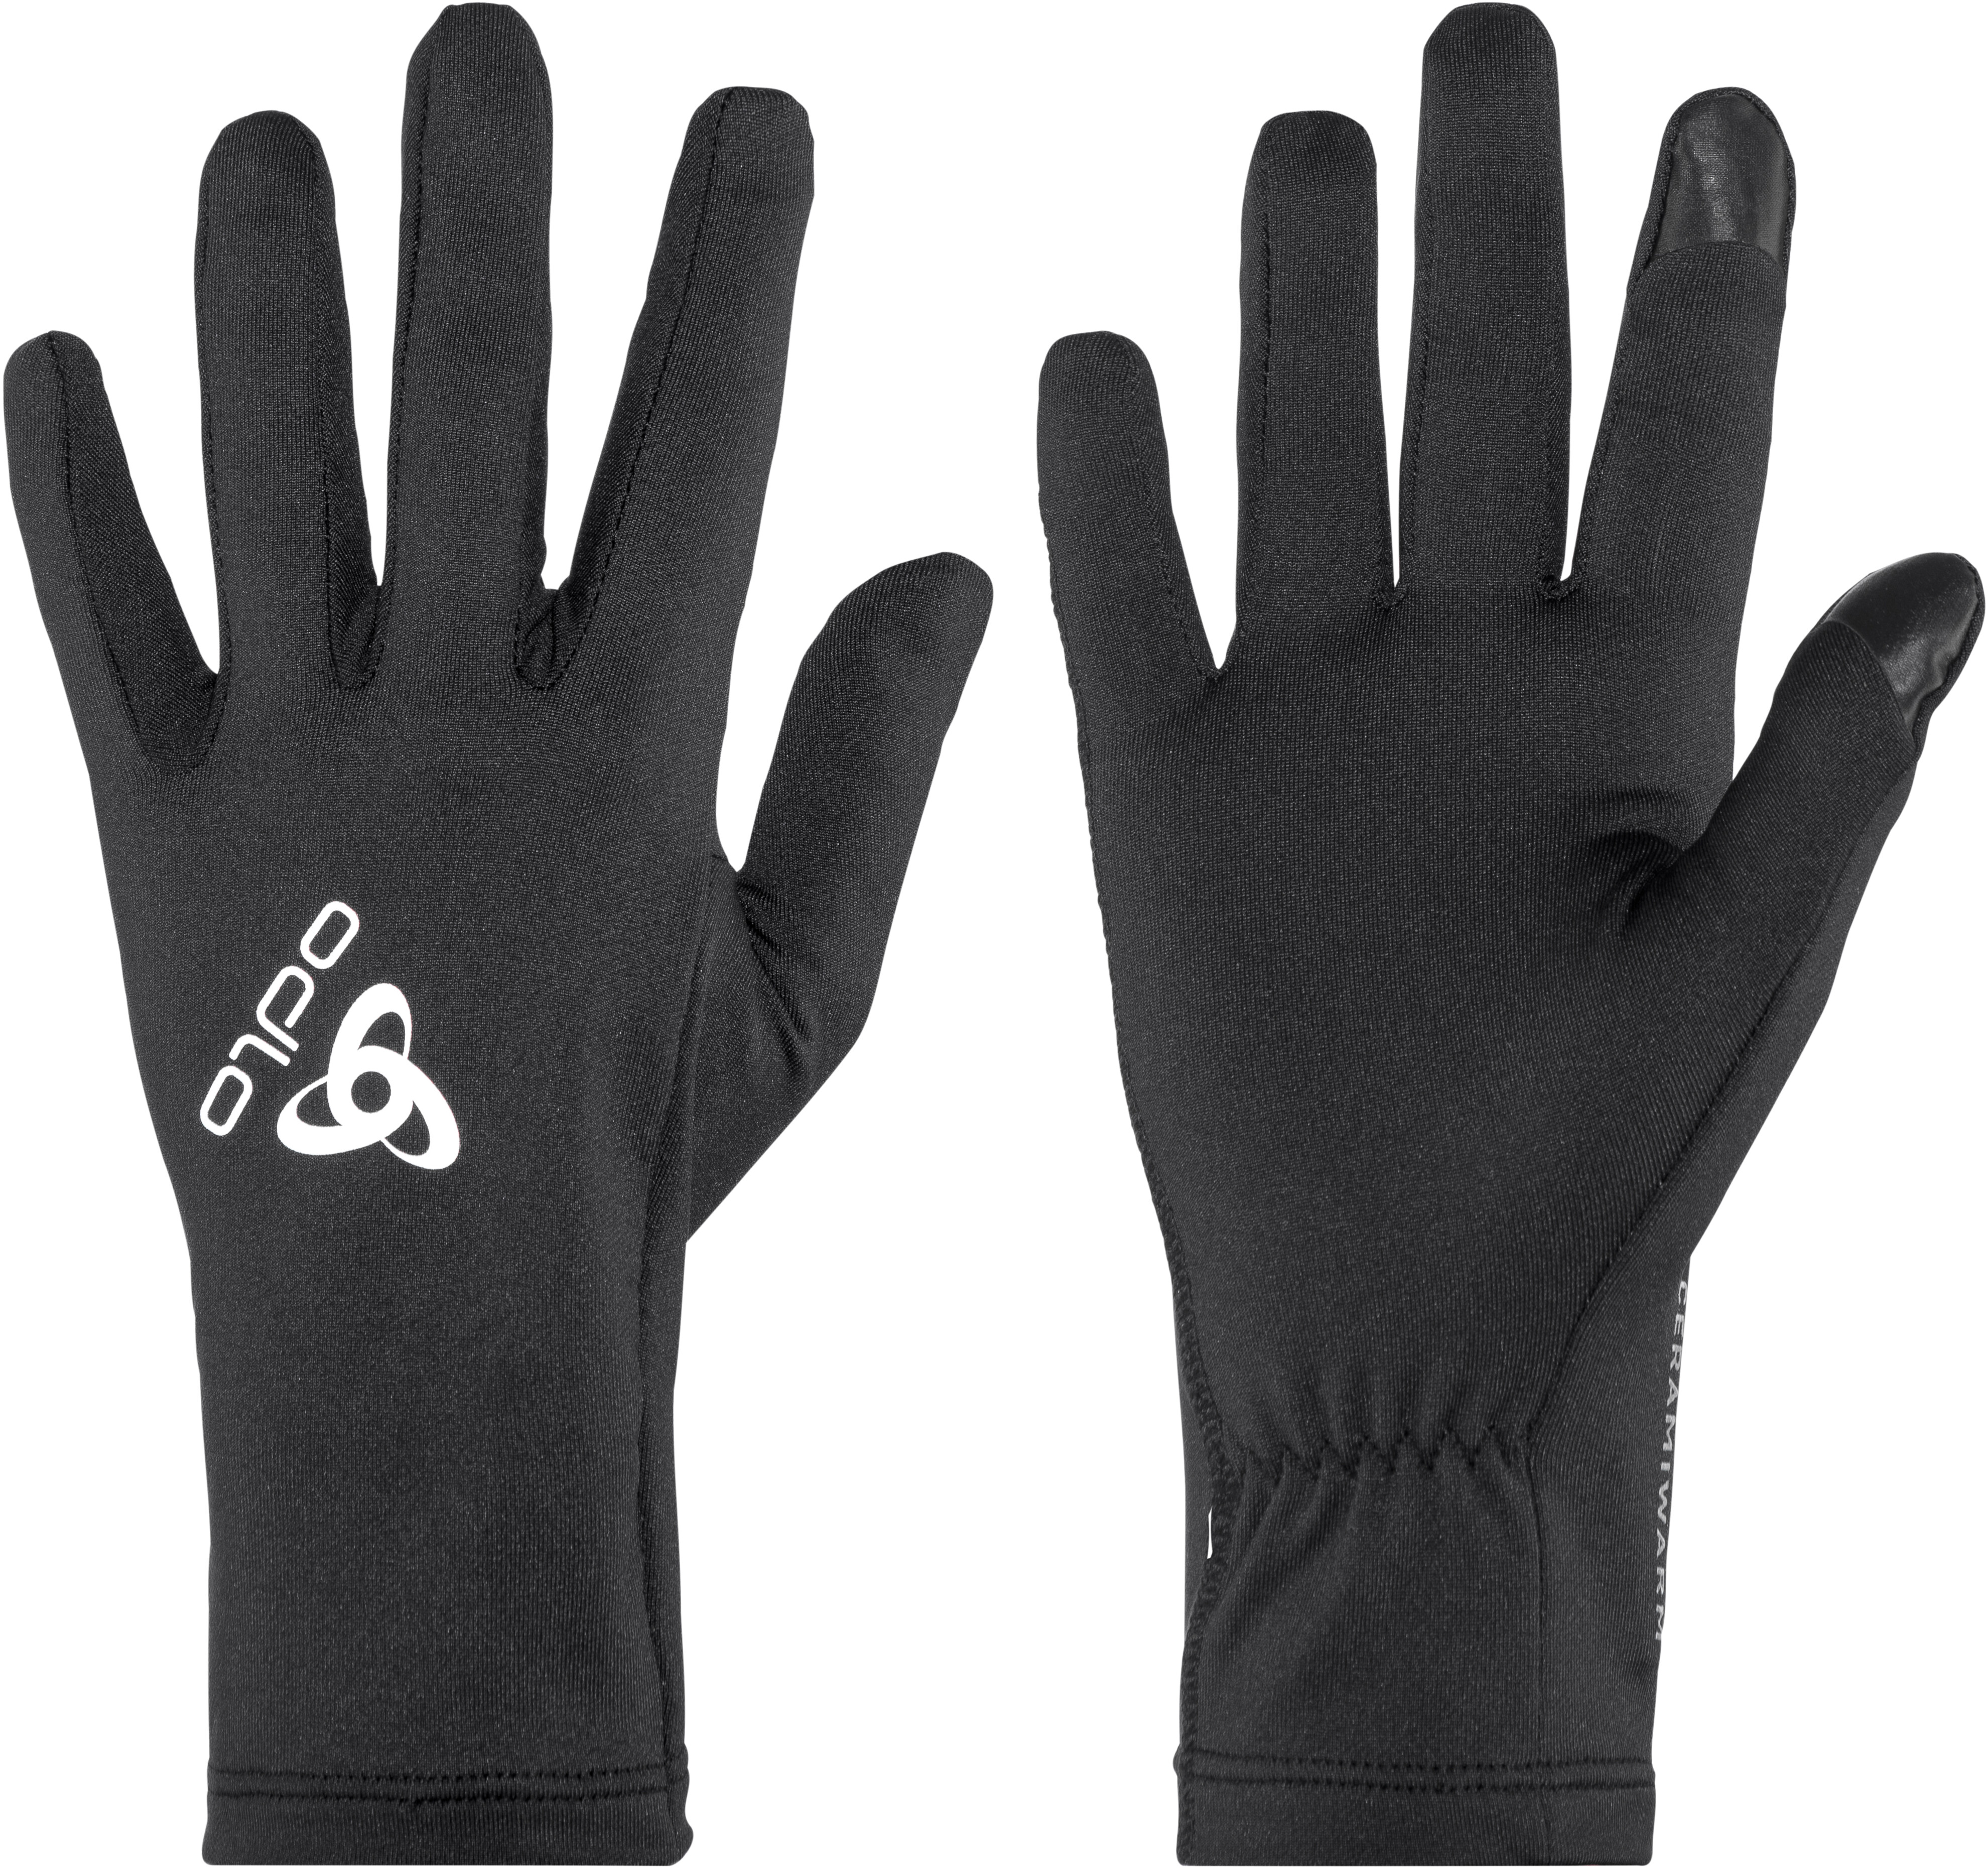 abc0f5d7af44 Odlo Ceramiwarm Light - Gants course à pied - noir - Boutique de ...